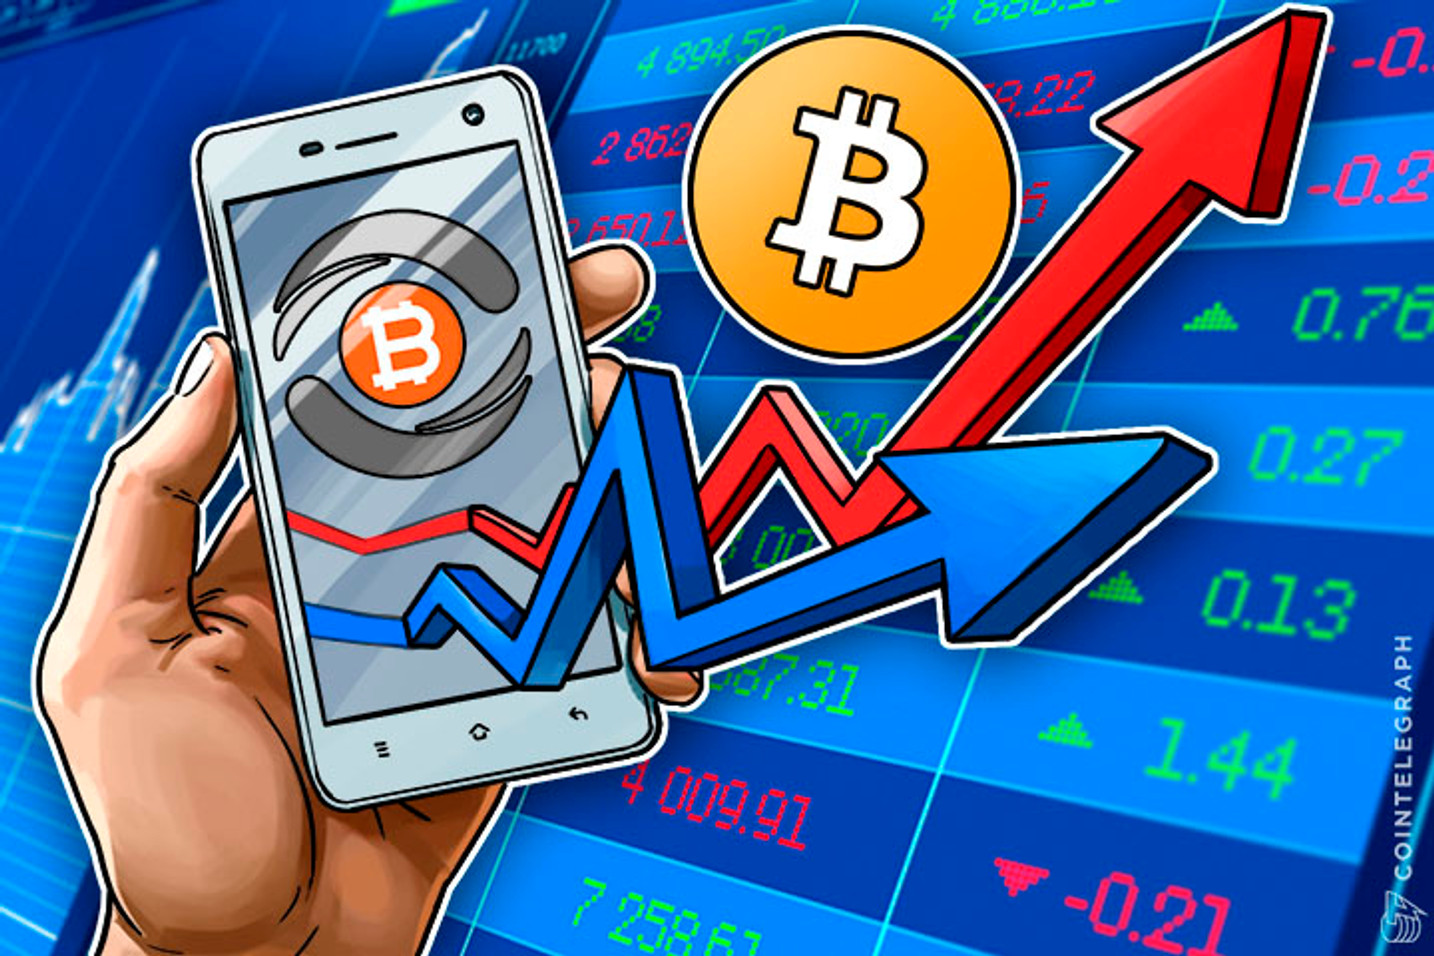 Chinese Bitcoin App BitKan Adds Over-the-Counter Trading Feature